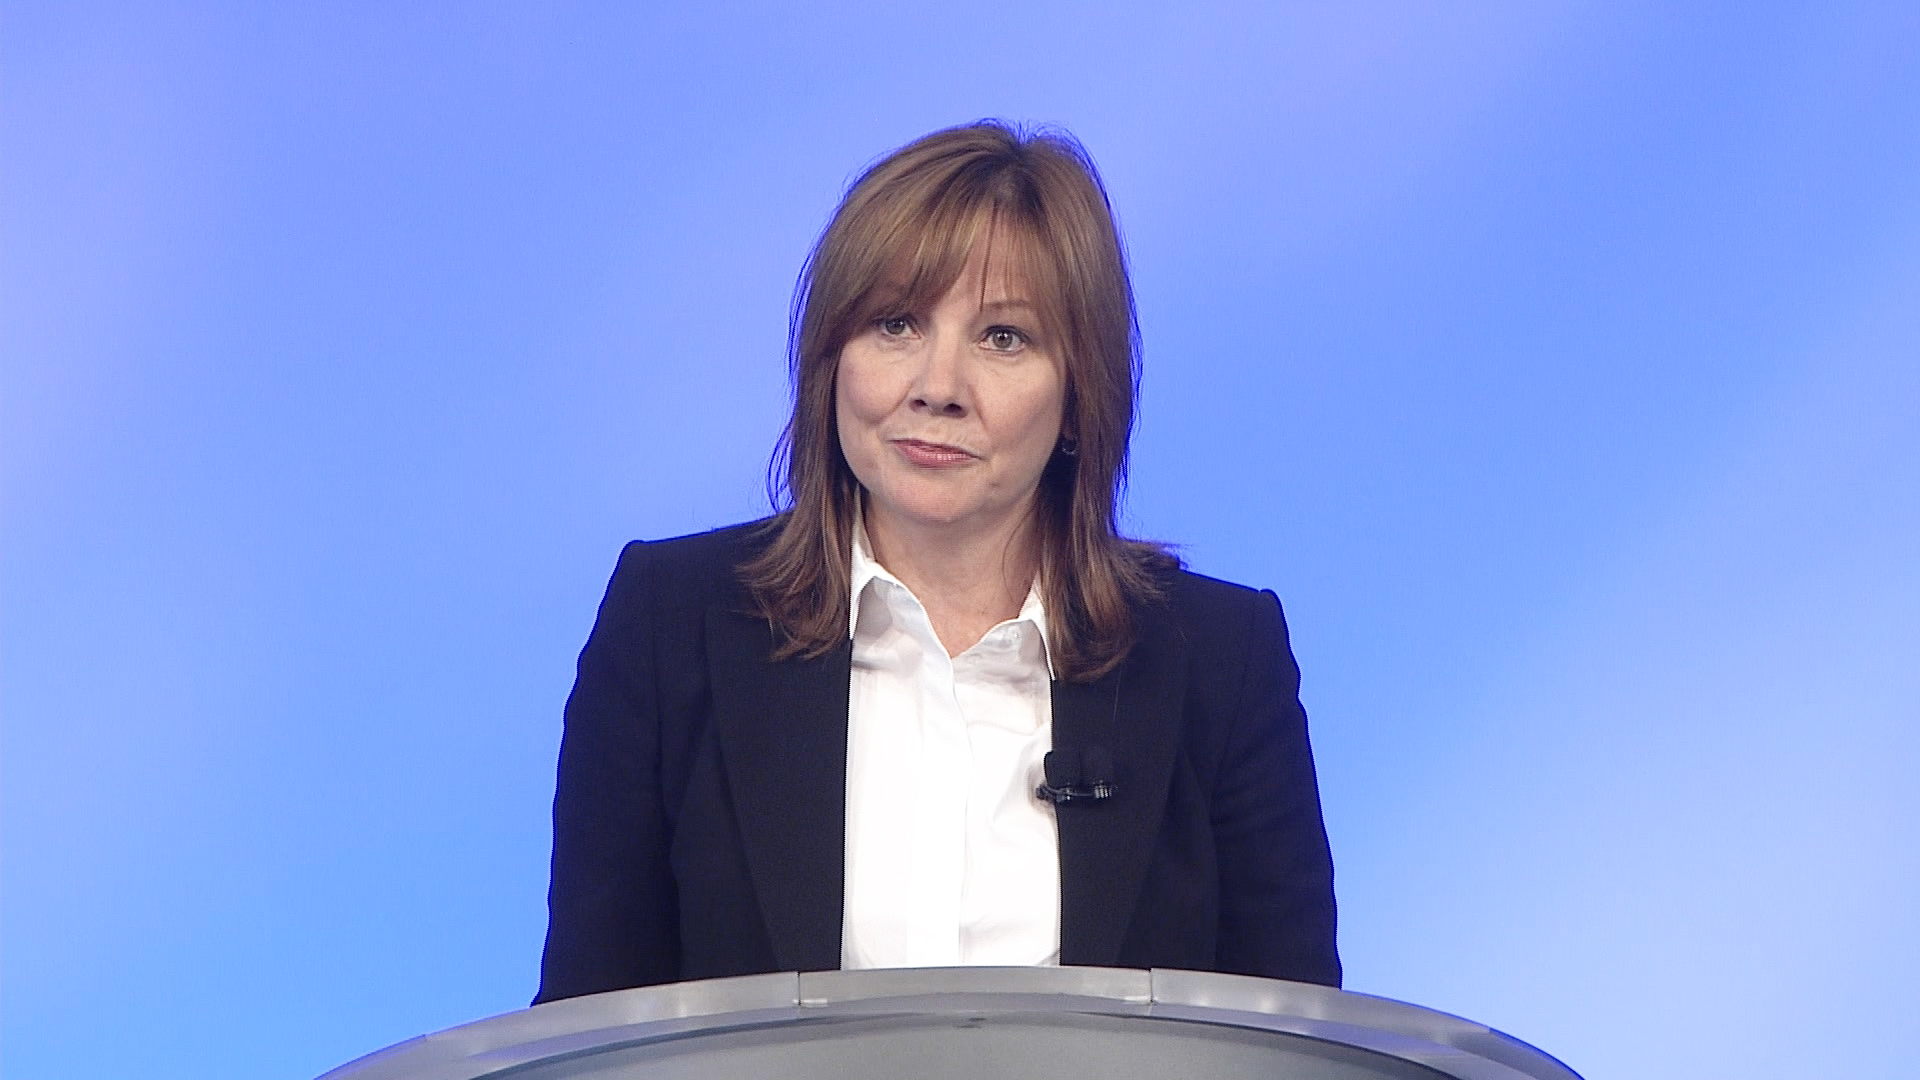 GM Report: Engineer Approved 'Switch From Hell' Even Though It Didn't Meet Specs